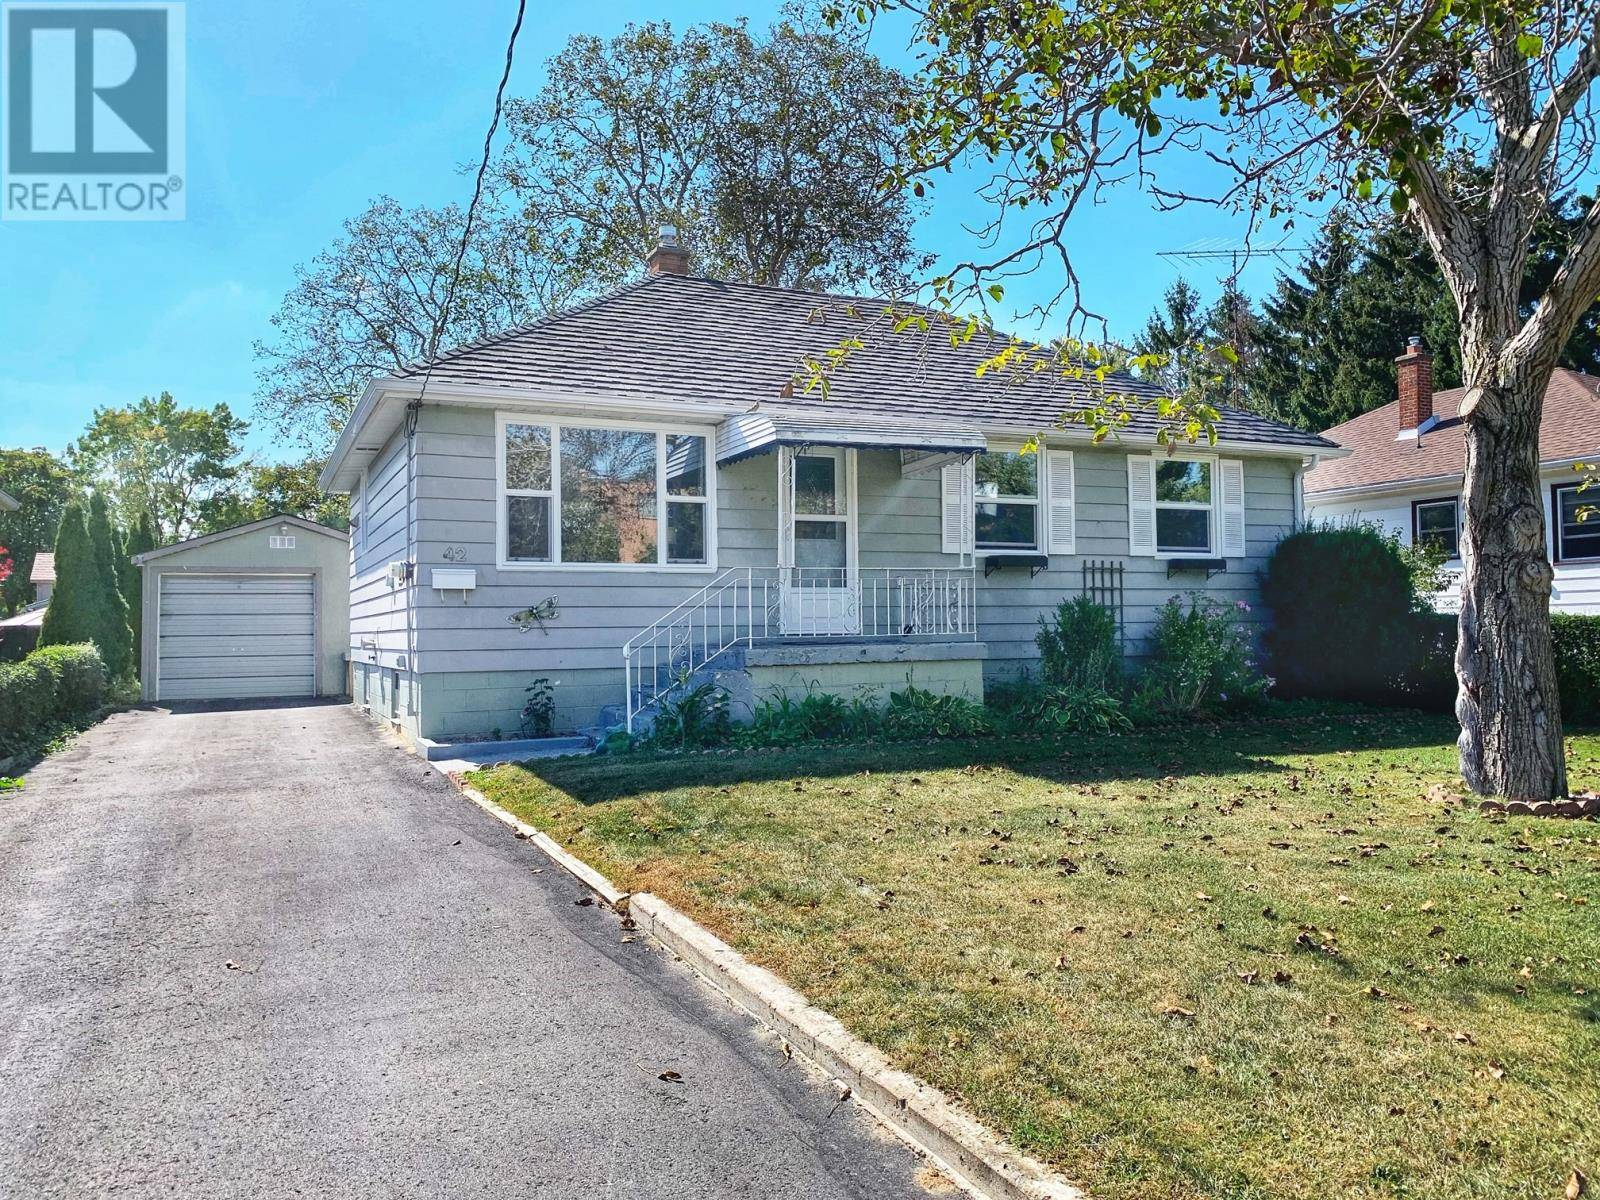 House for sale at 42 Coverdale St Chatham Ontario - MLS: 19025675